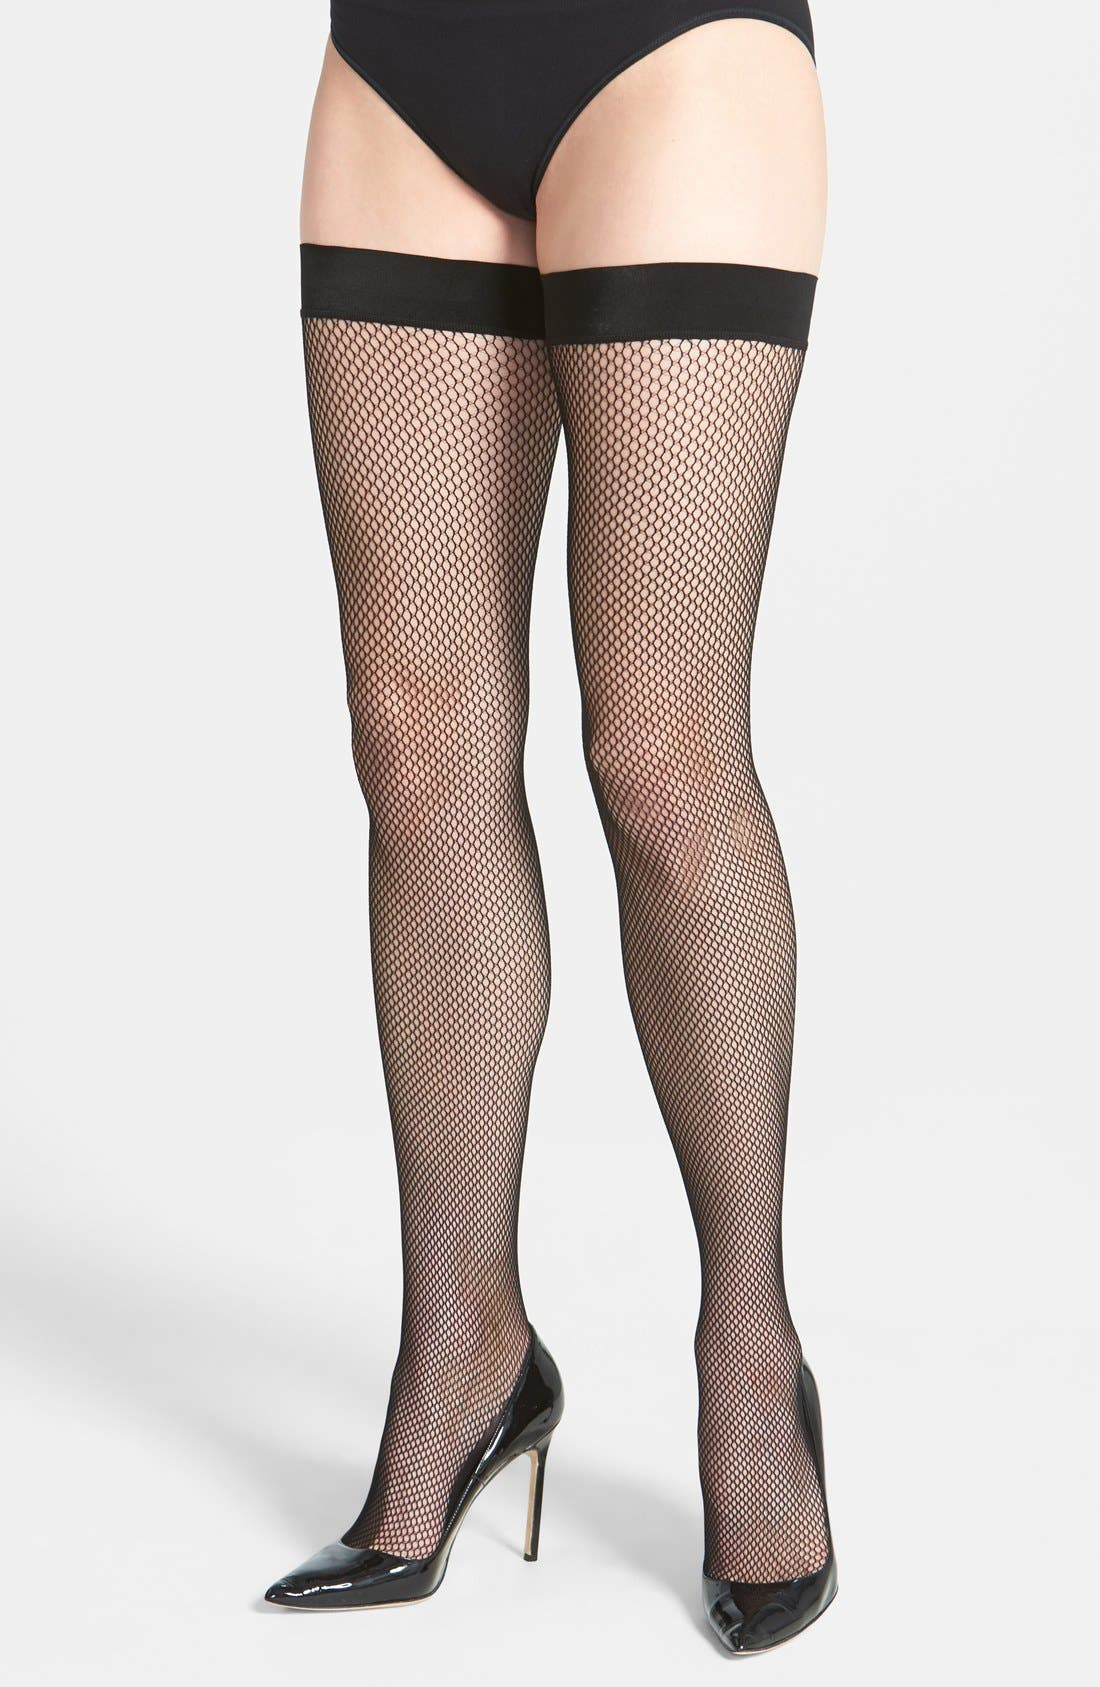 Alternate Image 1 Selected - DKNY 'Softest Fishnet' Thigh High Stockings